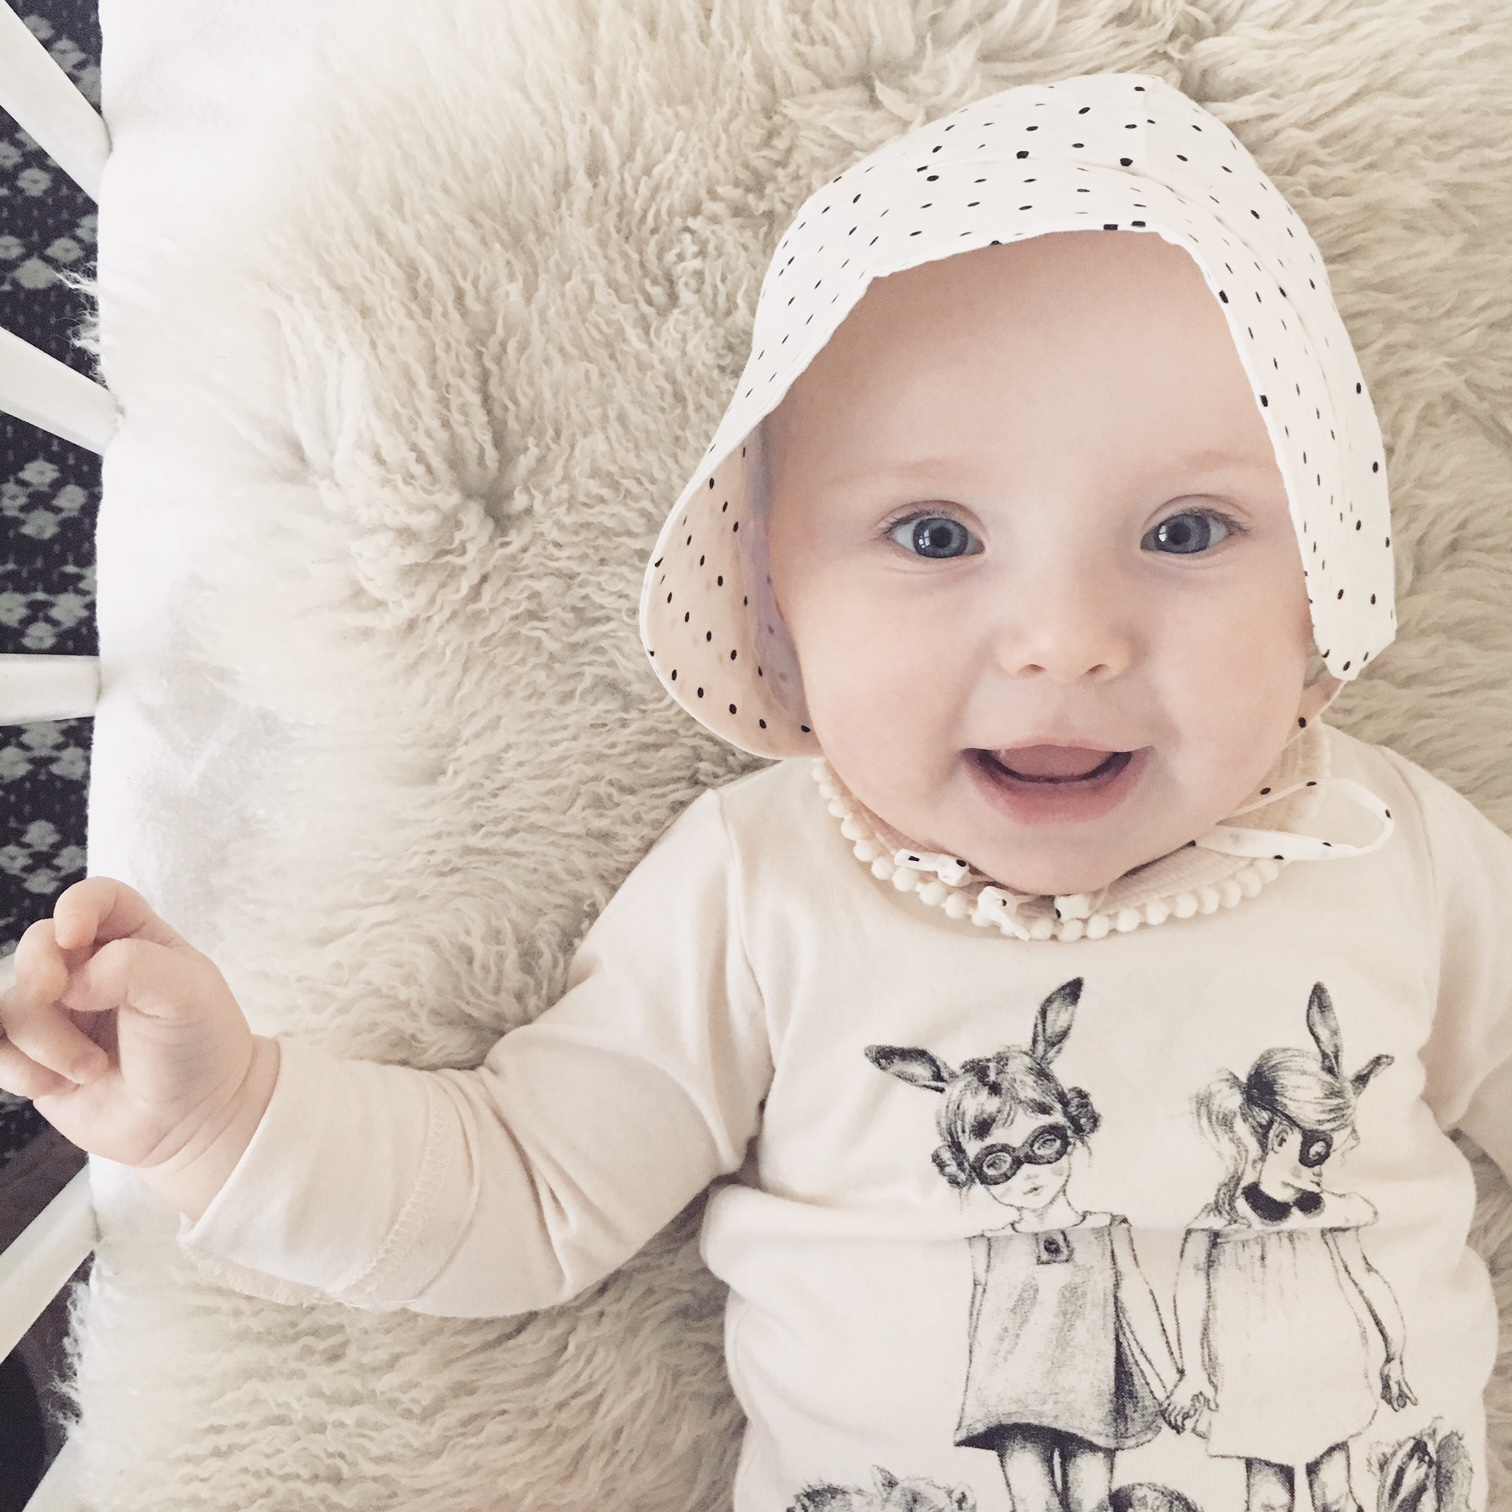 Antique Spot Bonnet by Little Teddy. Tee by Rock Your Baby.